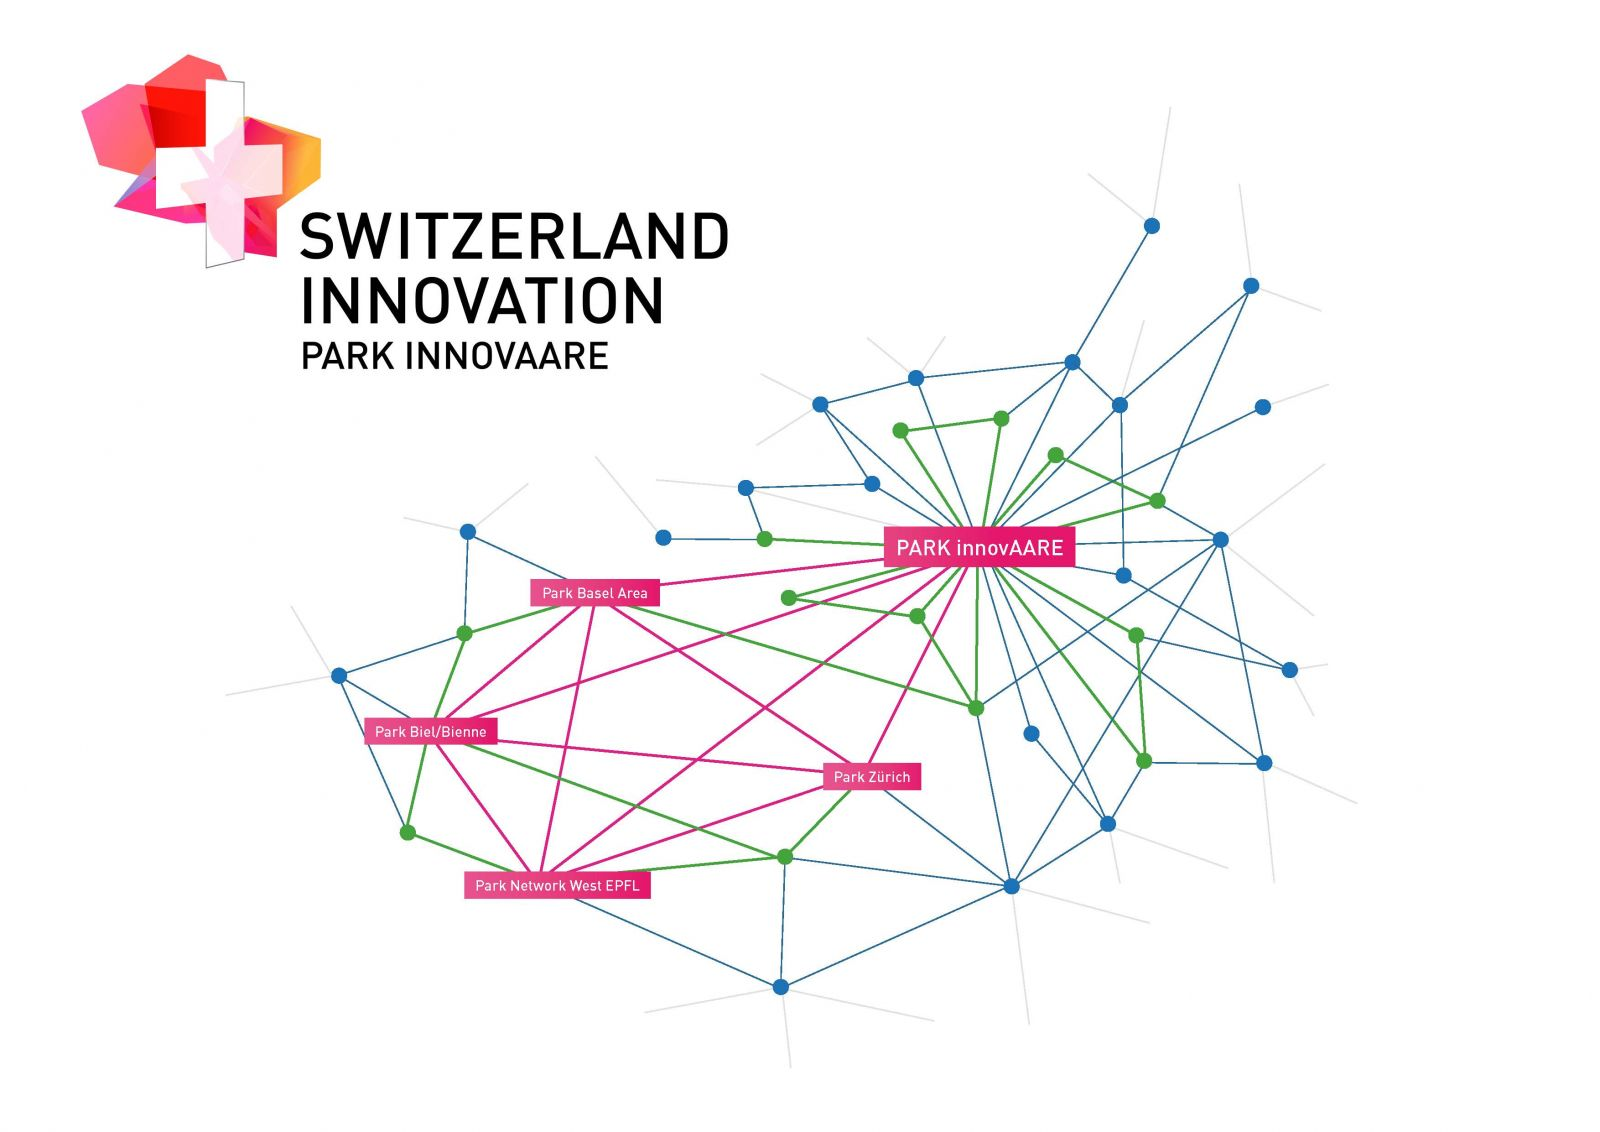 Switzerland Innovation - a strong network